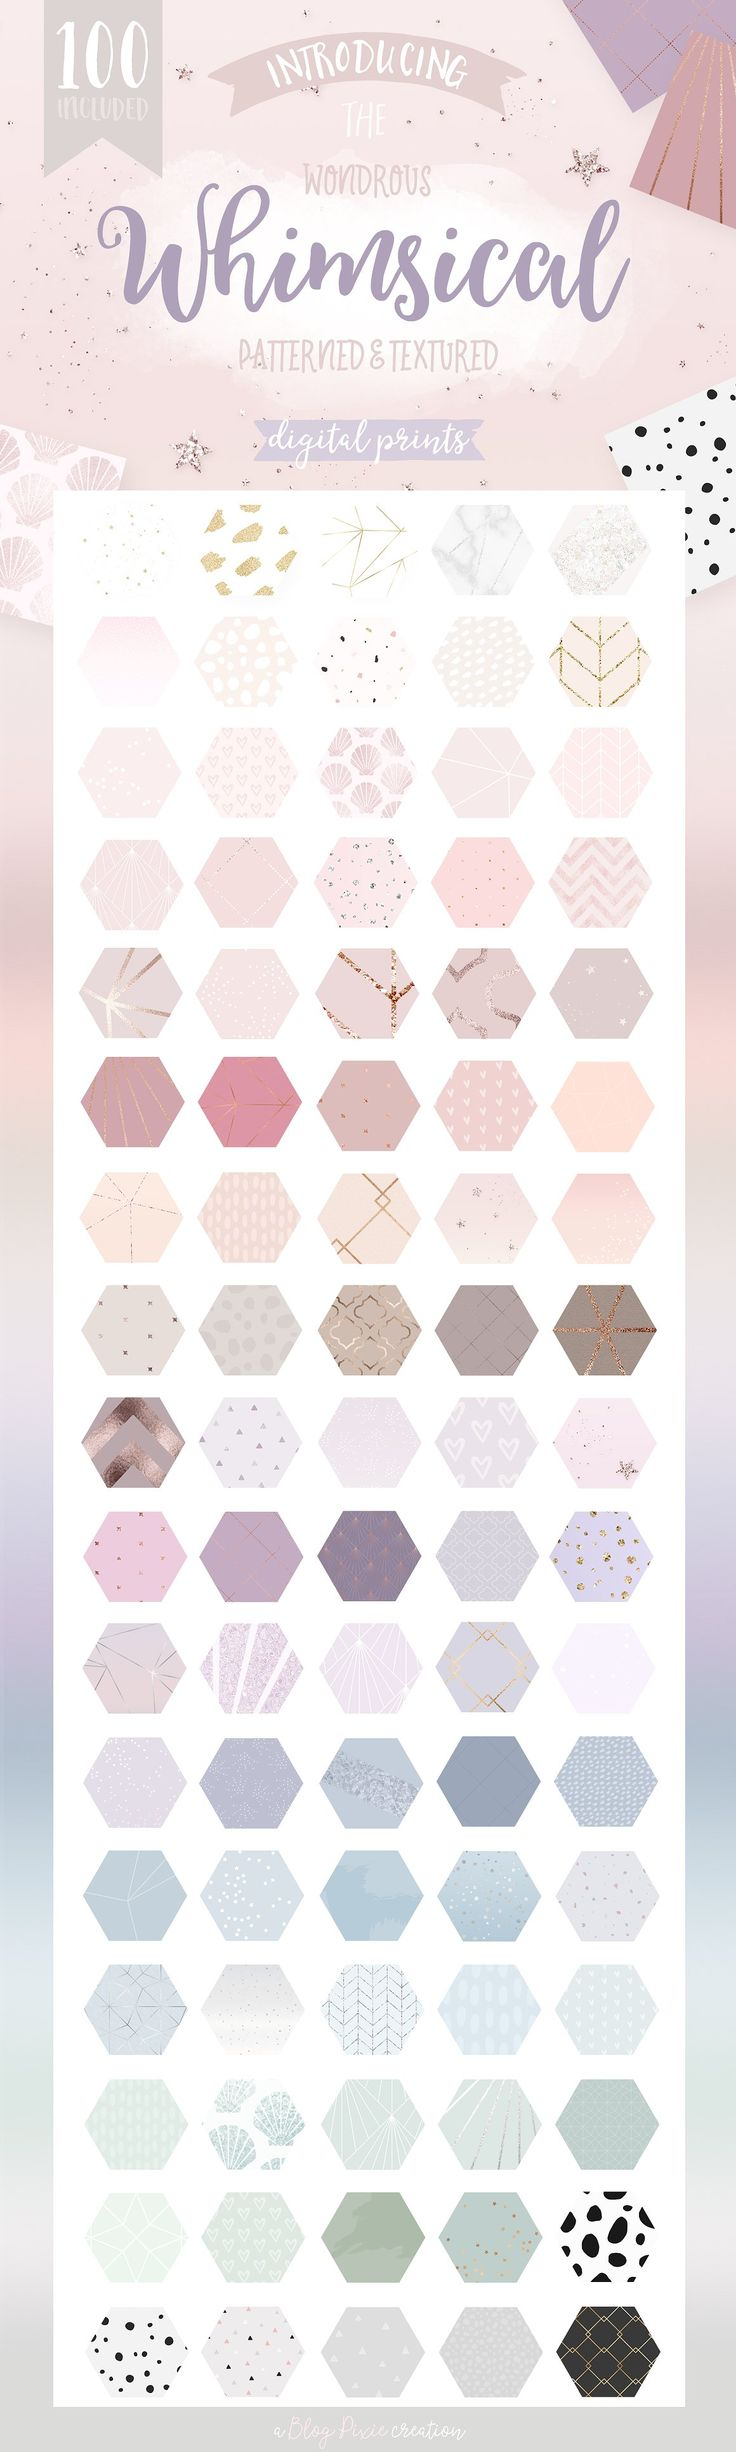 Whimsical Branding Patterns by Blog Pixie